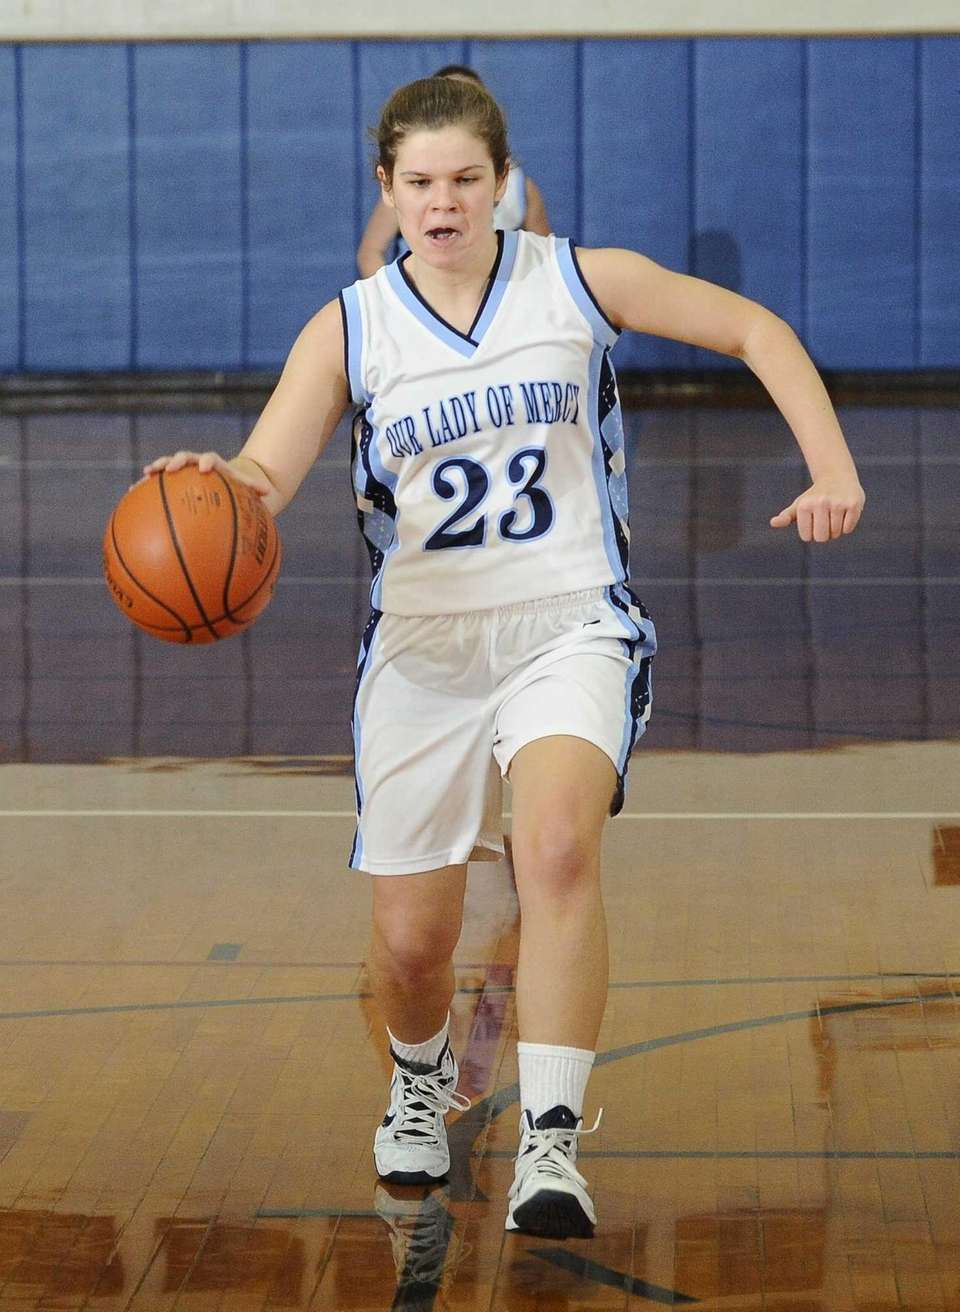 Our Lady of Mercy's Renee Rios controls the